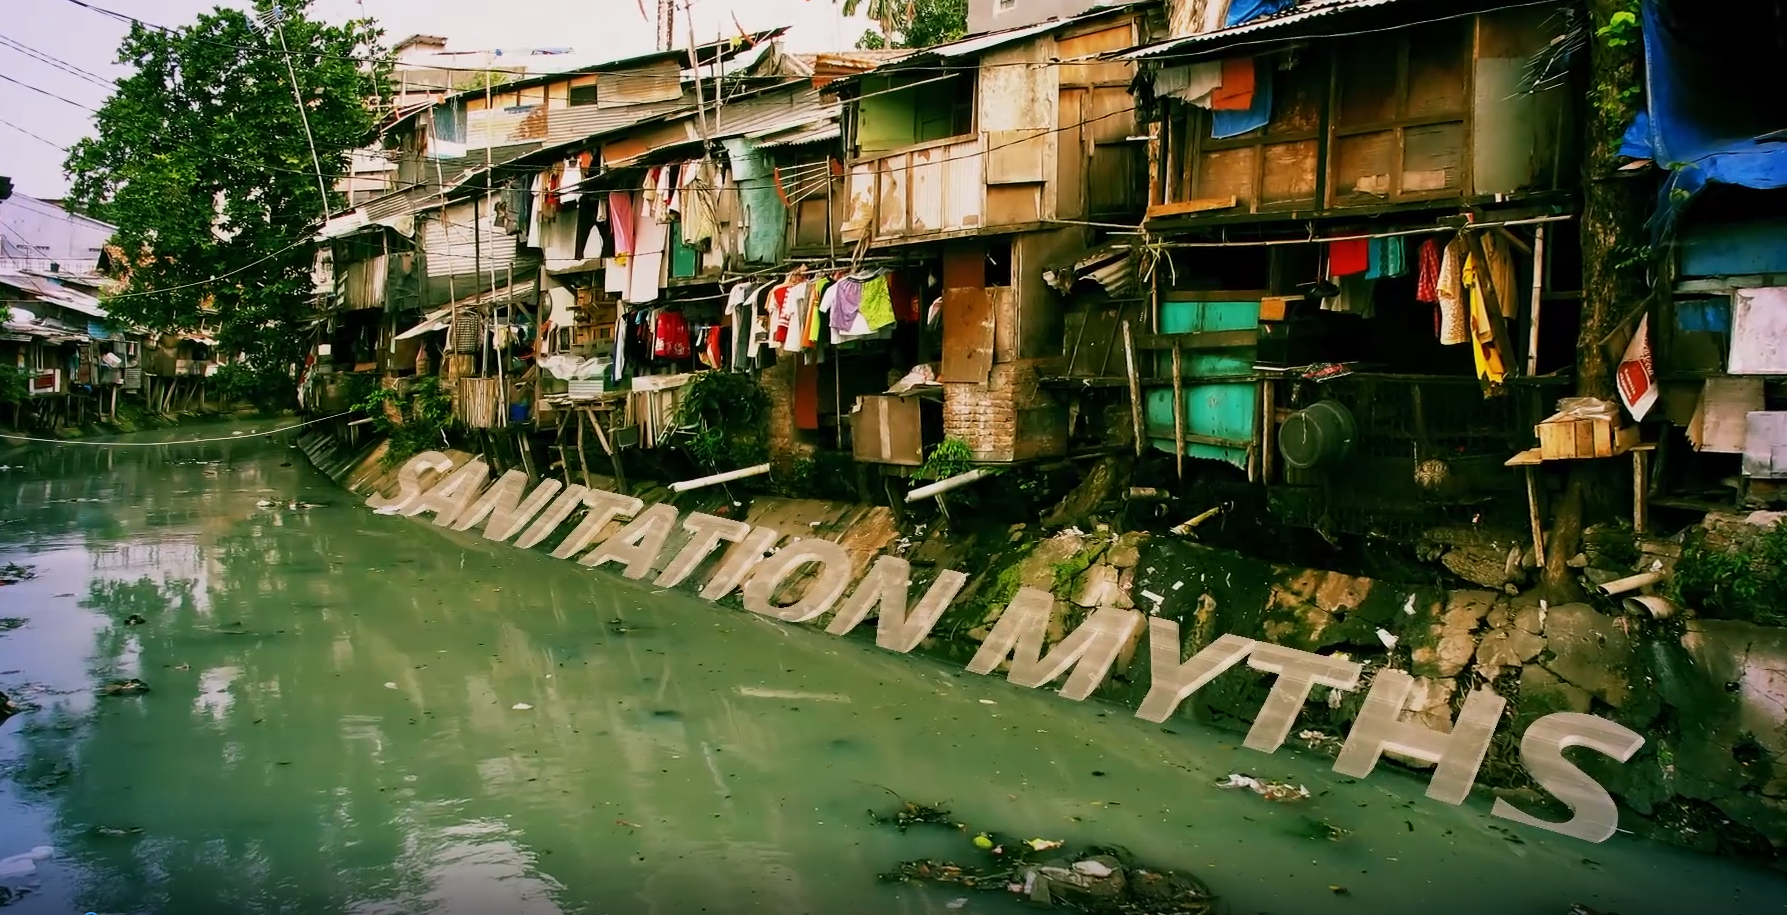 7 Myths about Urban Sanitation Debunked